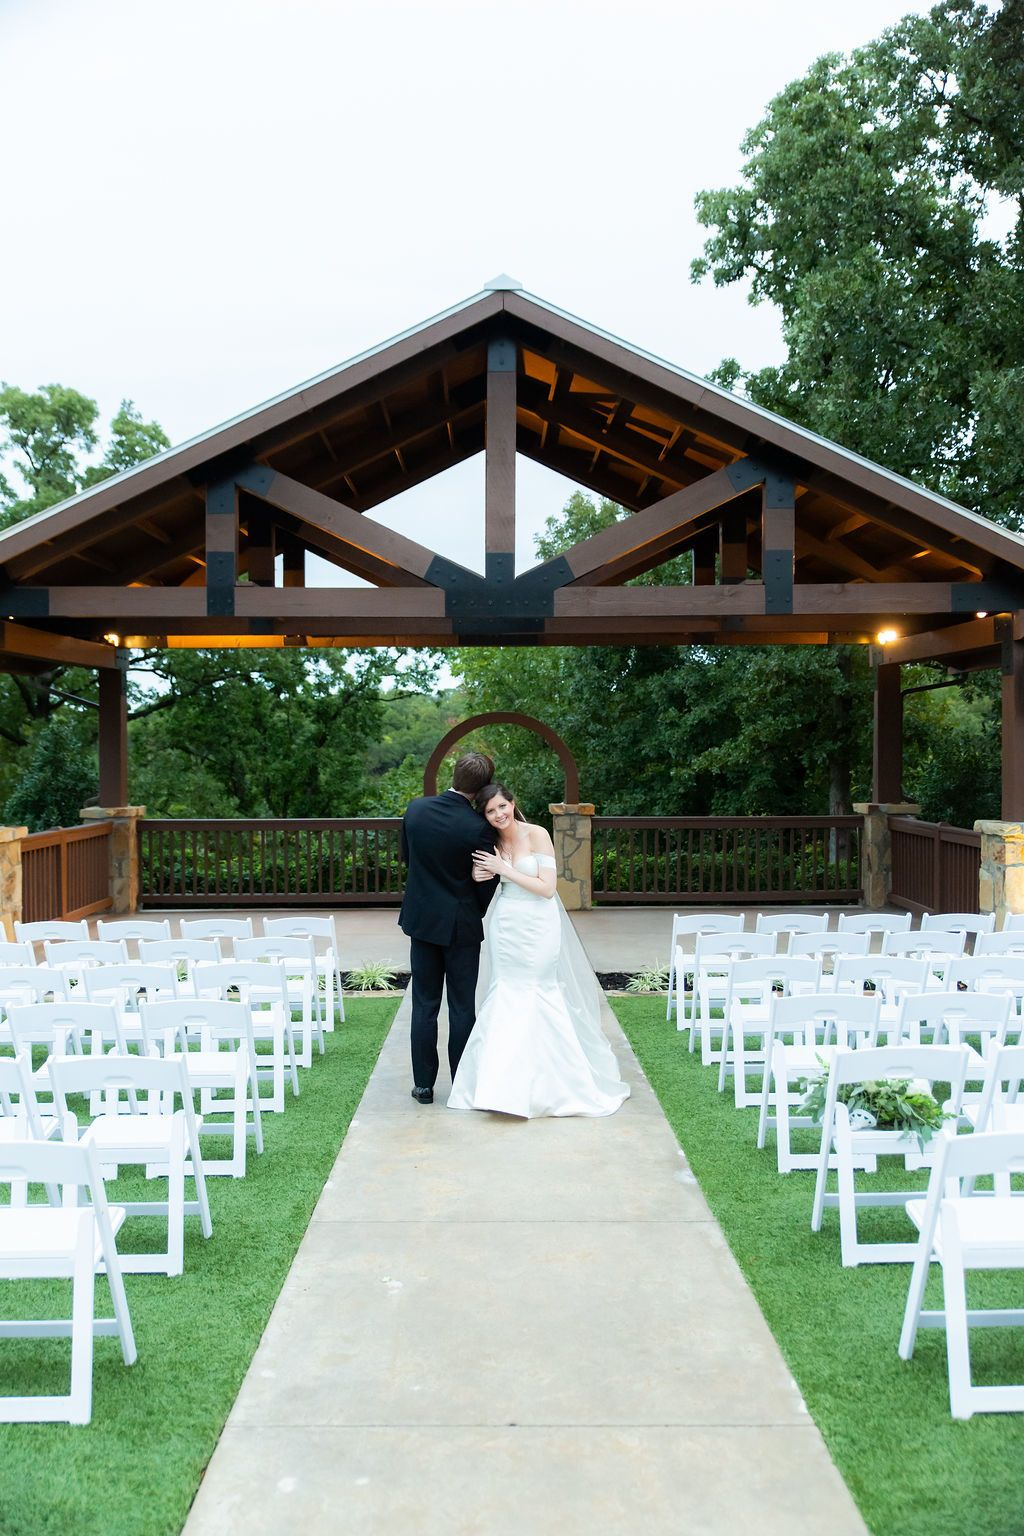 Tulsa Wedding Venue Springs Venue Oklahoma Wedding Venues Tulsa Wedding Venues Oklahoma Wedding Venues Outdoor